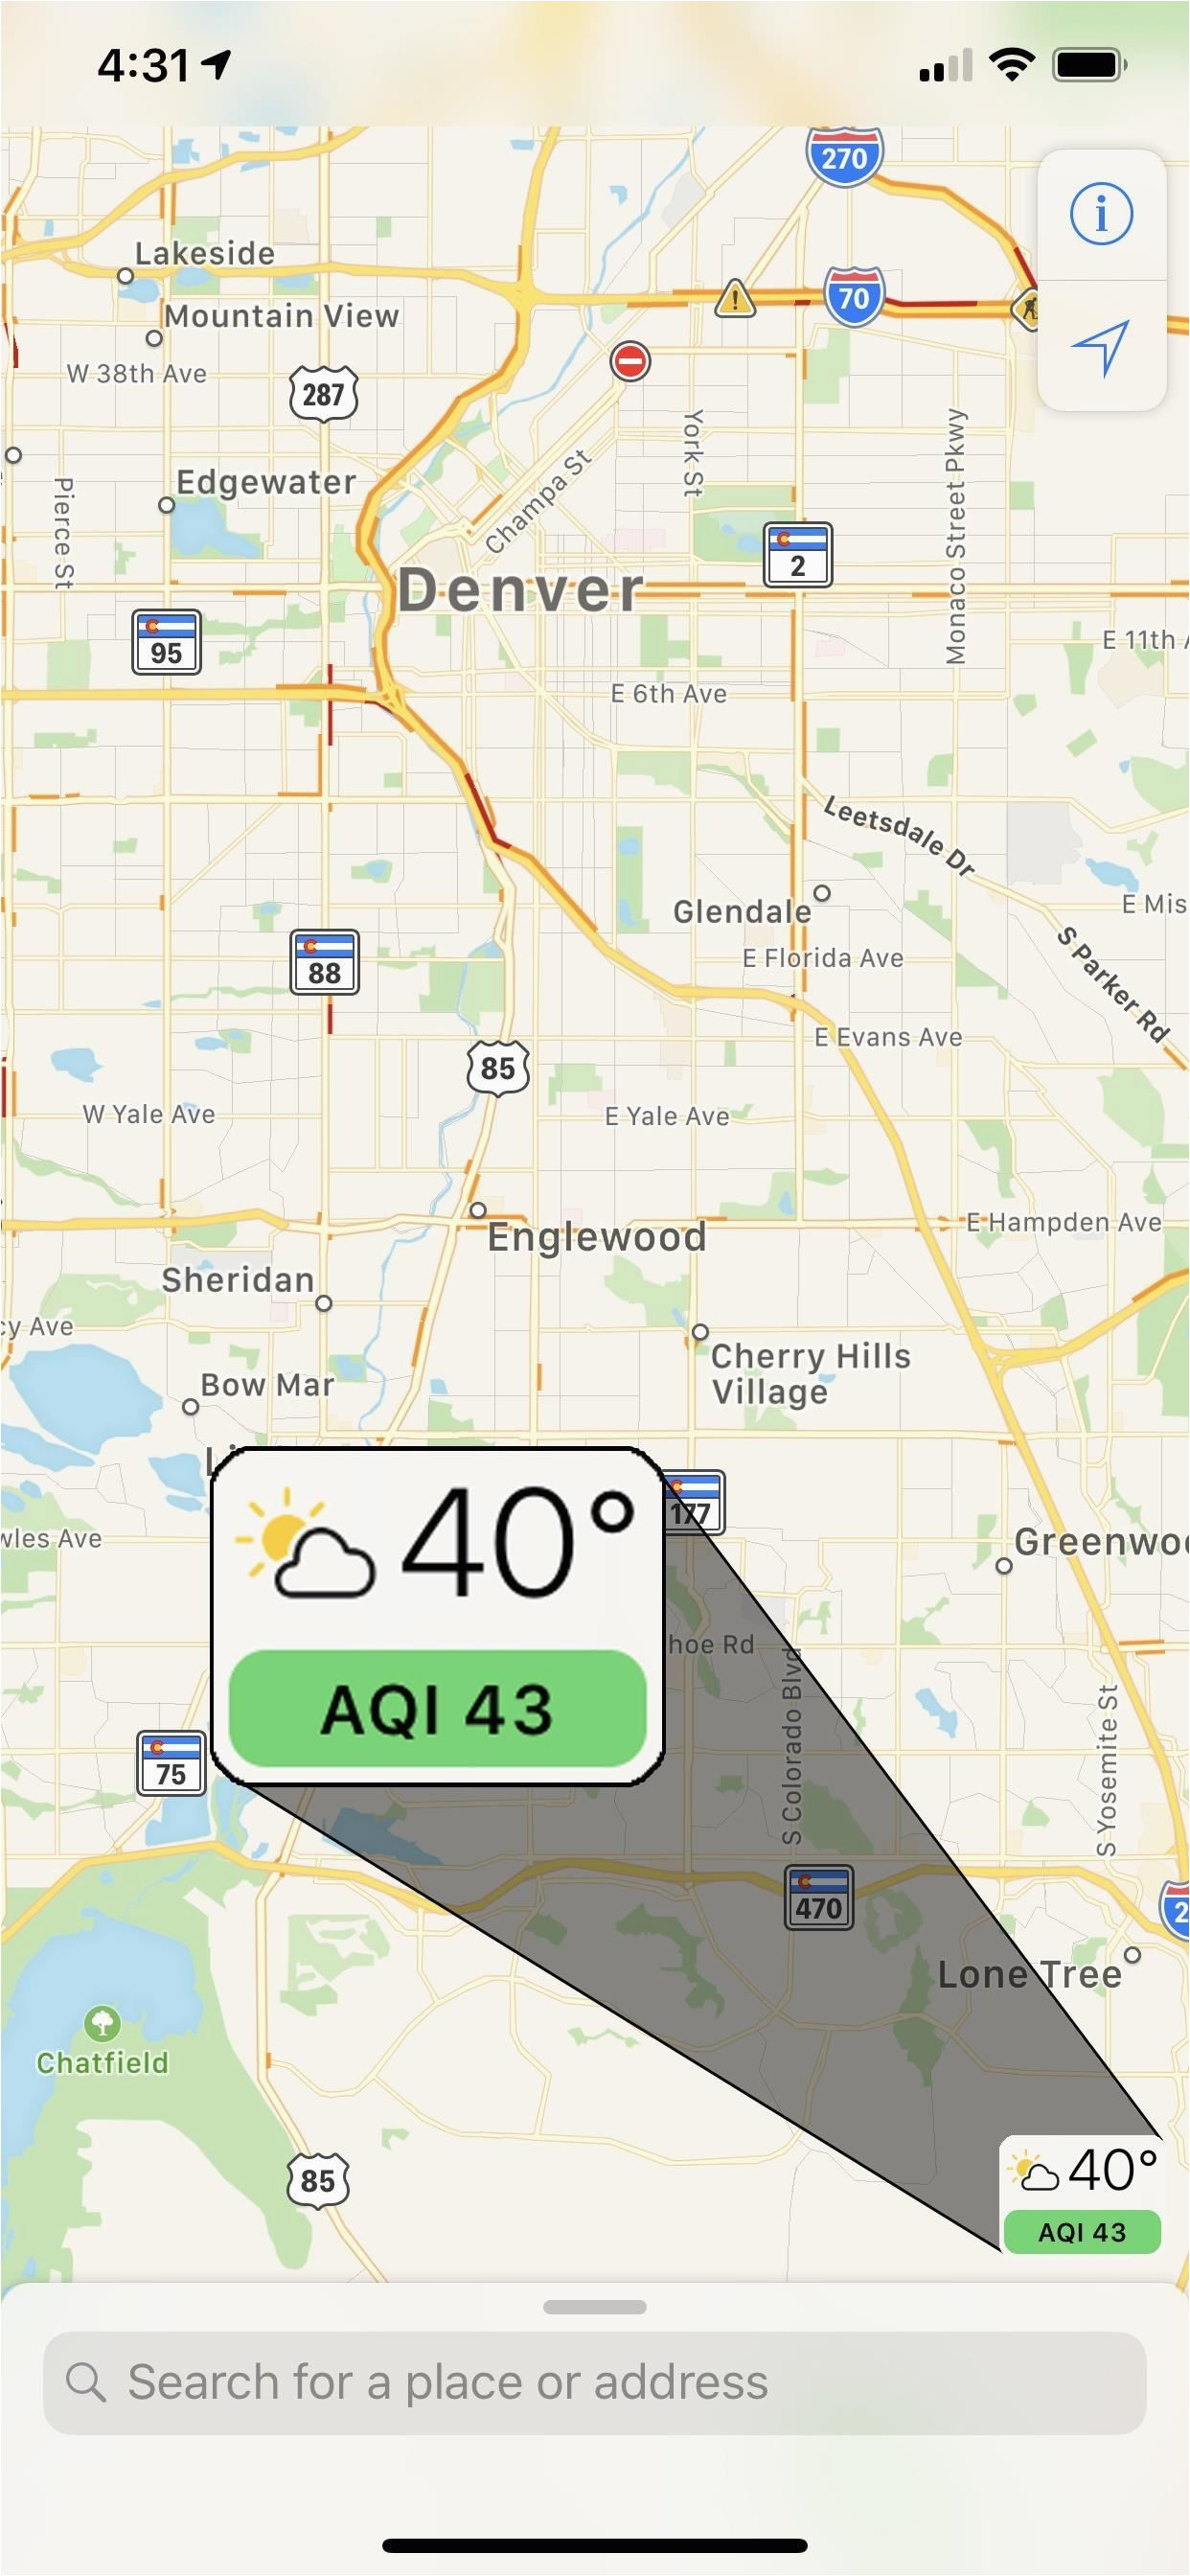 view air quality in apple maps to see how polluted cities